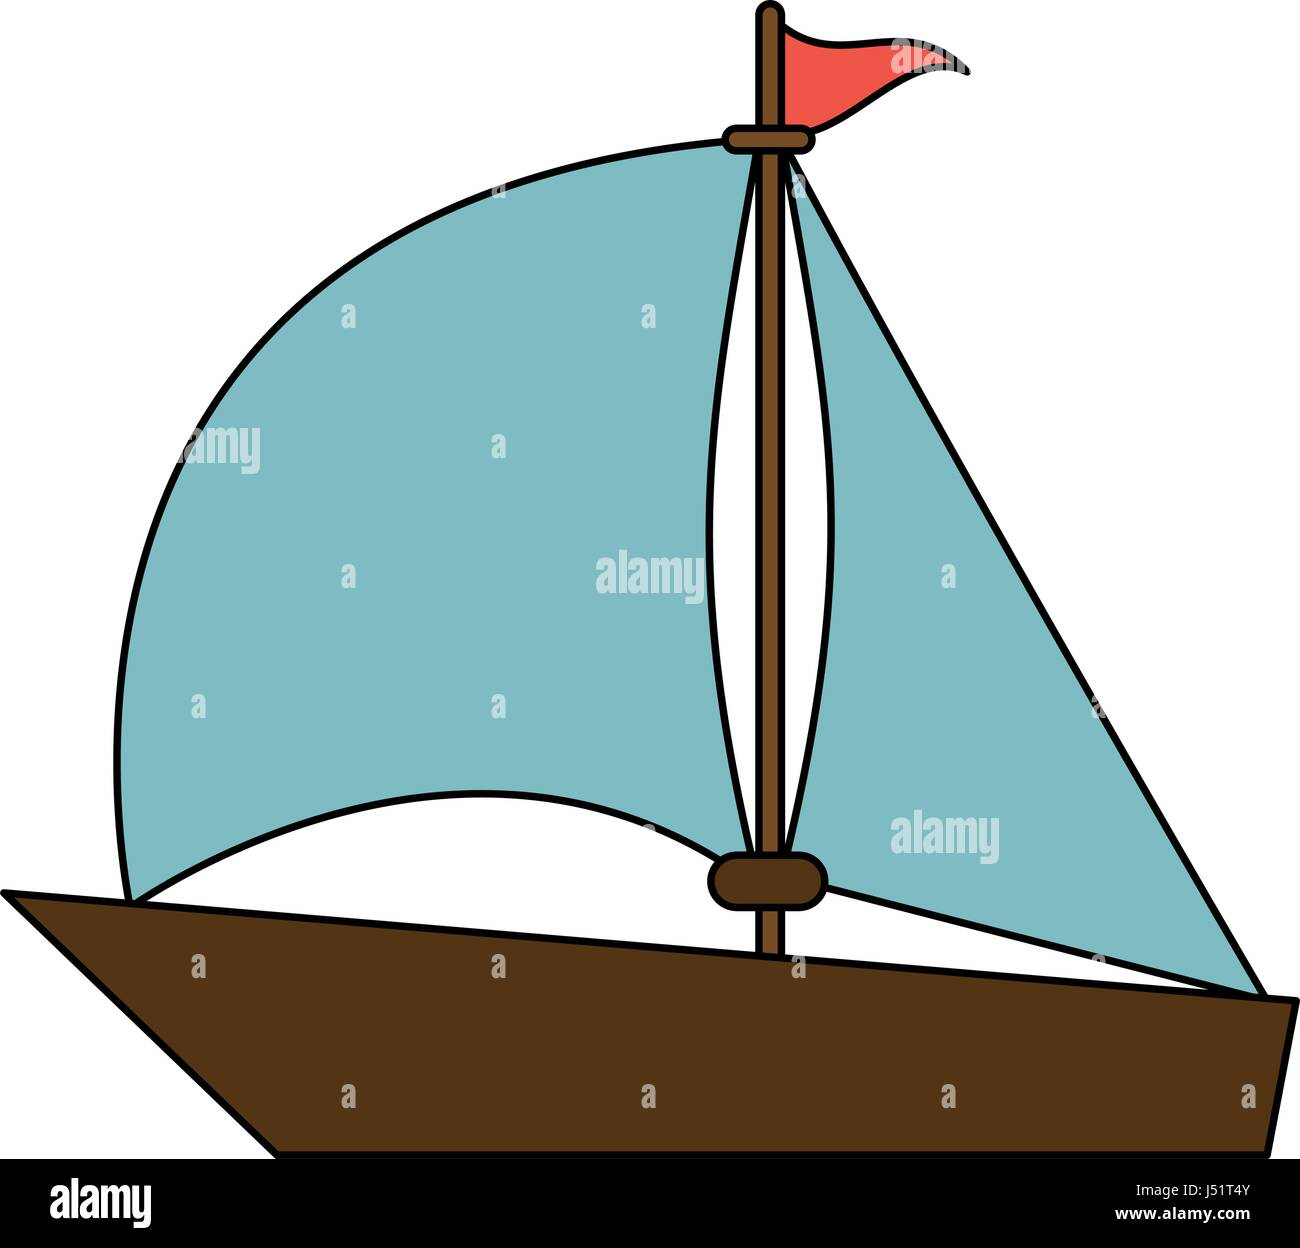 hight resolution of color image wooden boat with sail